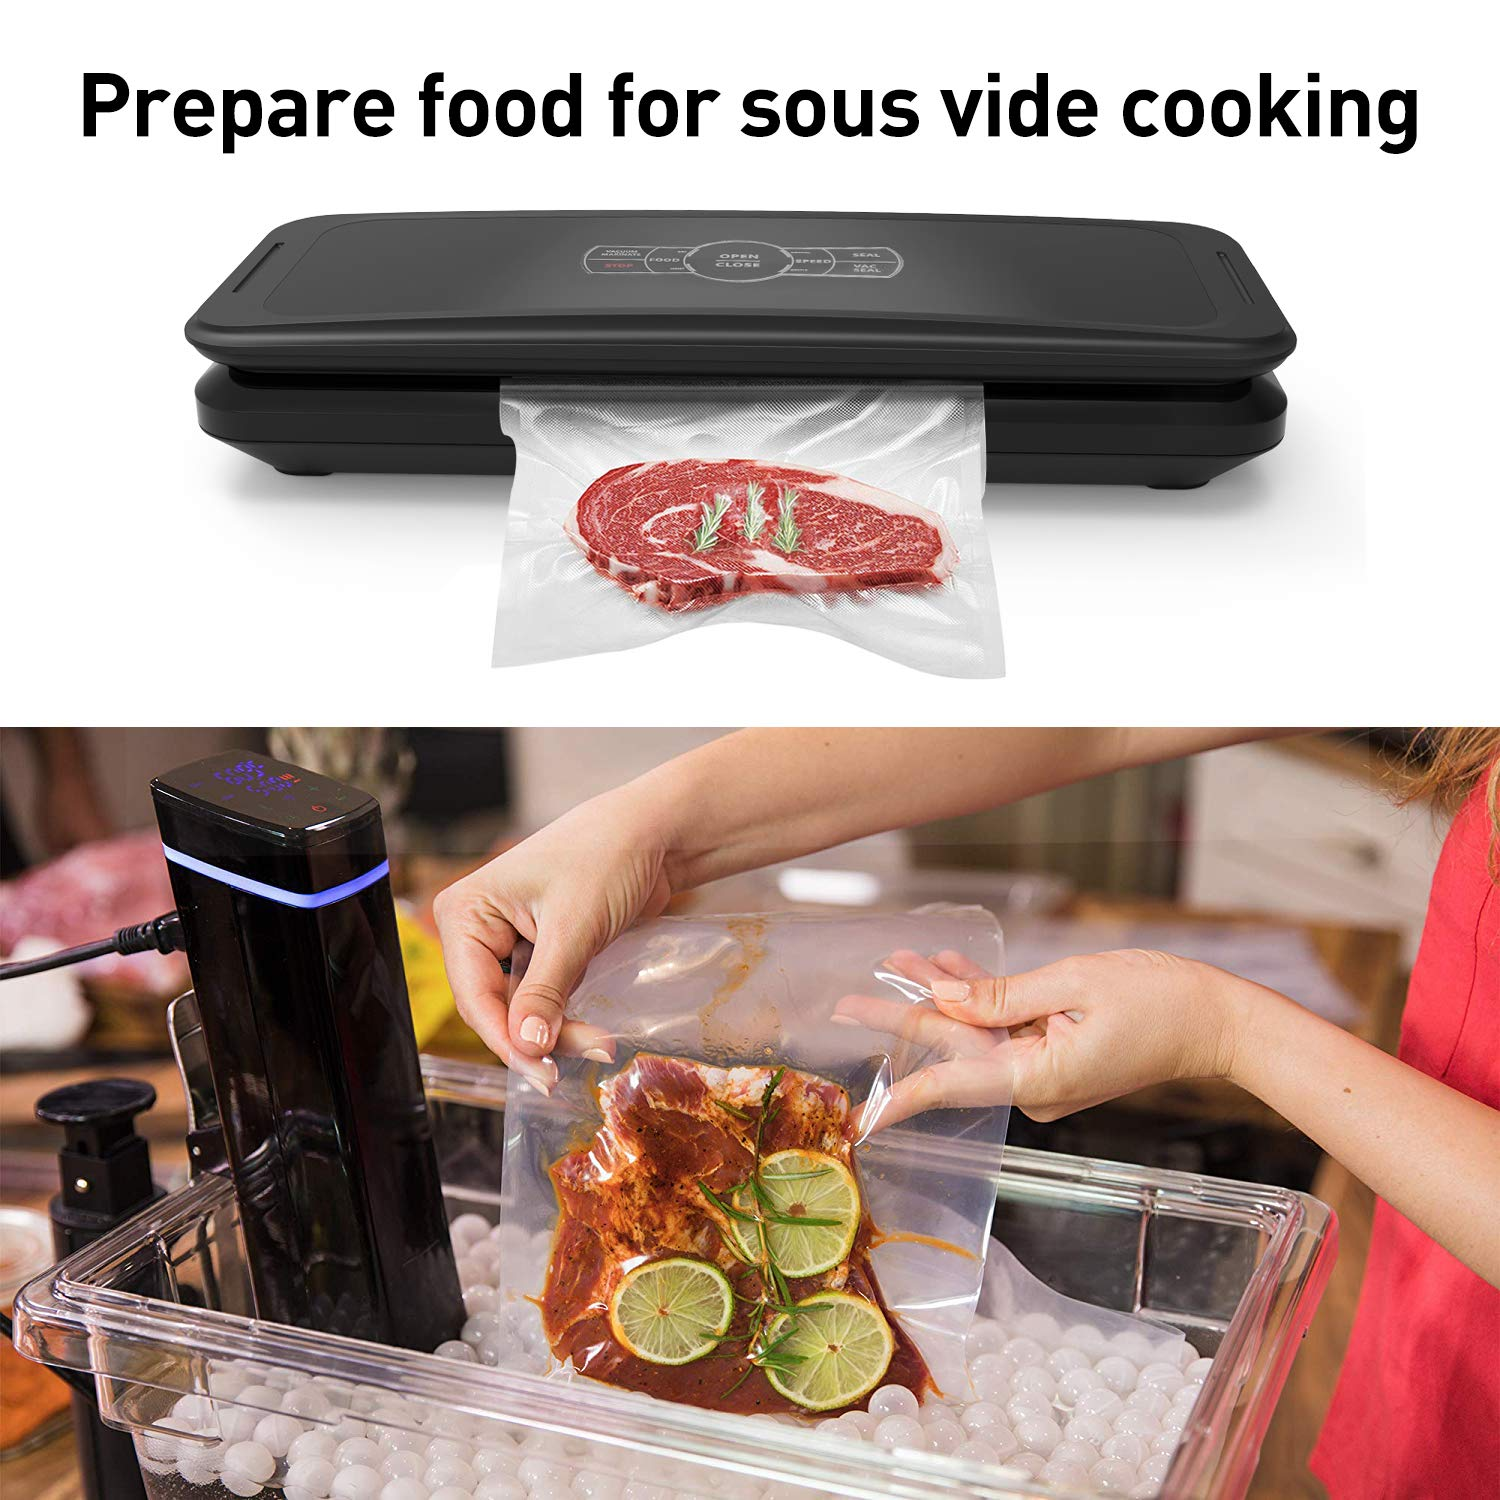 Food Vacuum Sealer Machine Full Automatic Vacuum Air Sealing System w/ Wine Stopper and Vacuum Sealer Bag Starter Kit for Food Preservation,Quick Marinate and Sous vide, Dry & Moist Modes, Safety Certified